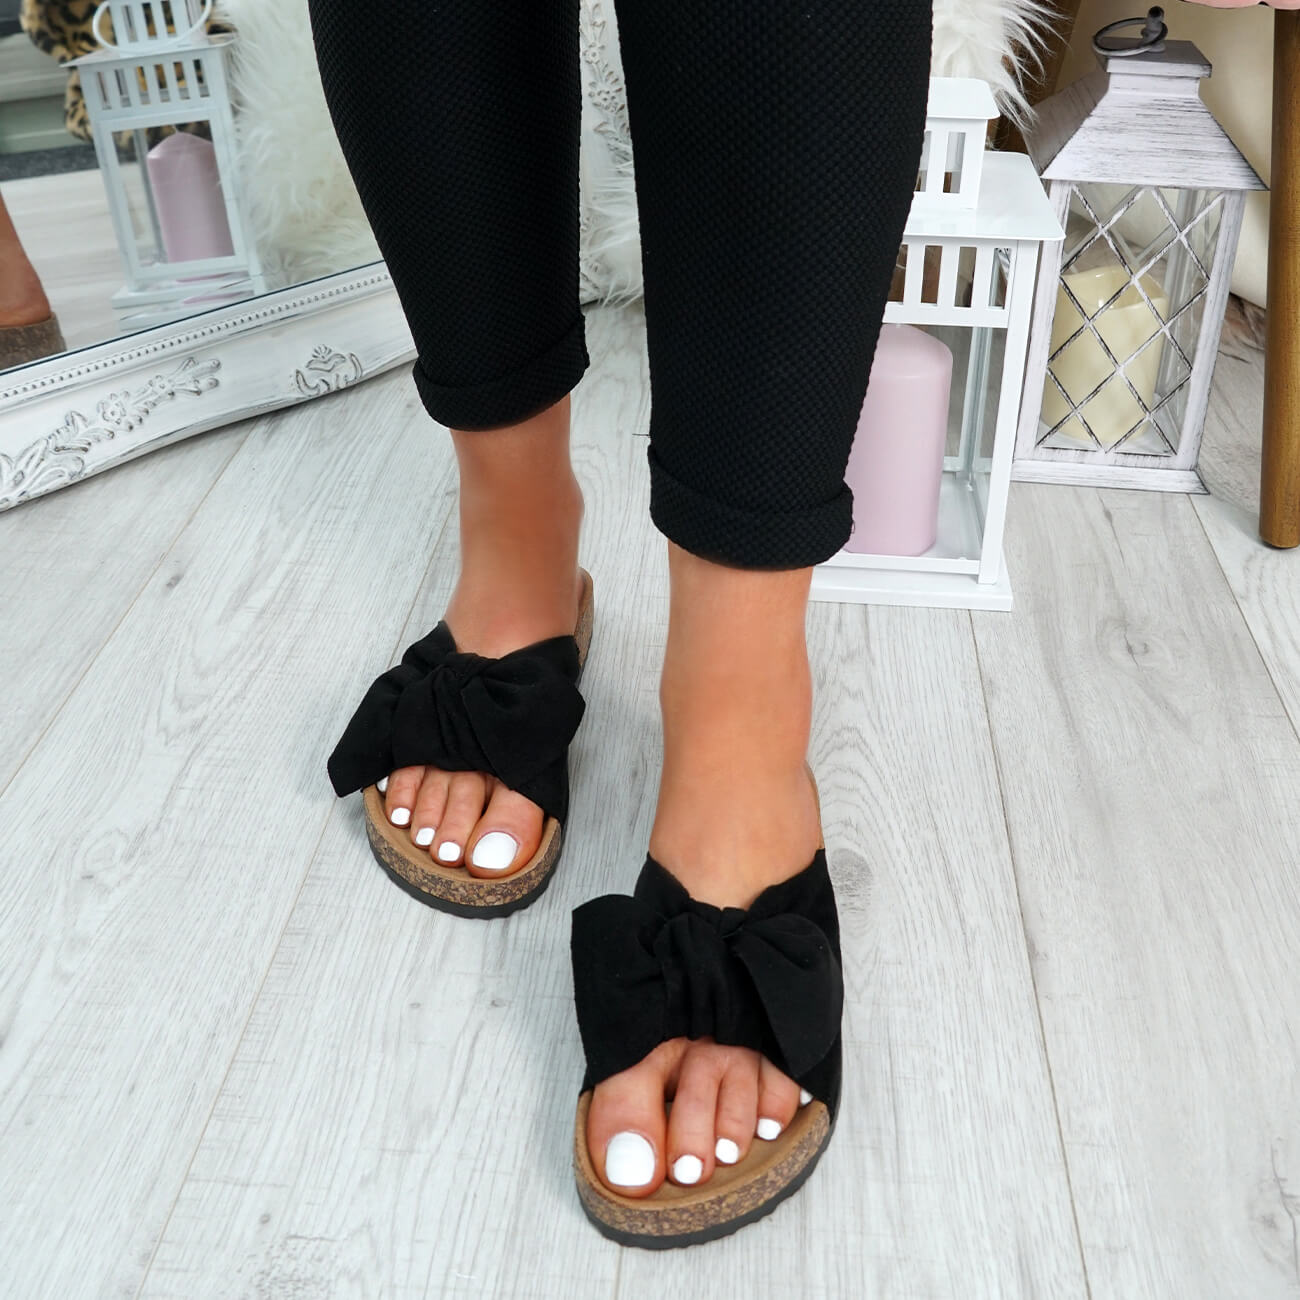 WOMENS-LADIES-SLIP-ON-FLAT-SANDALS-BOW-SLIDERS-SUMMER-CASUAL-SHOES-SIZE thumbnail 15